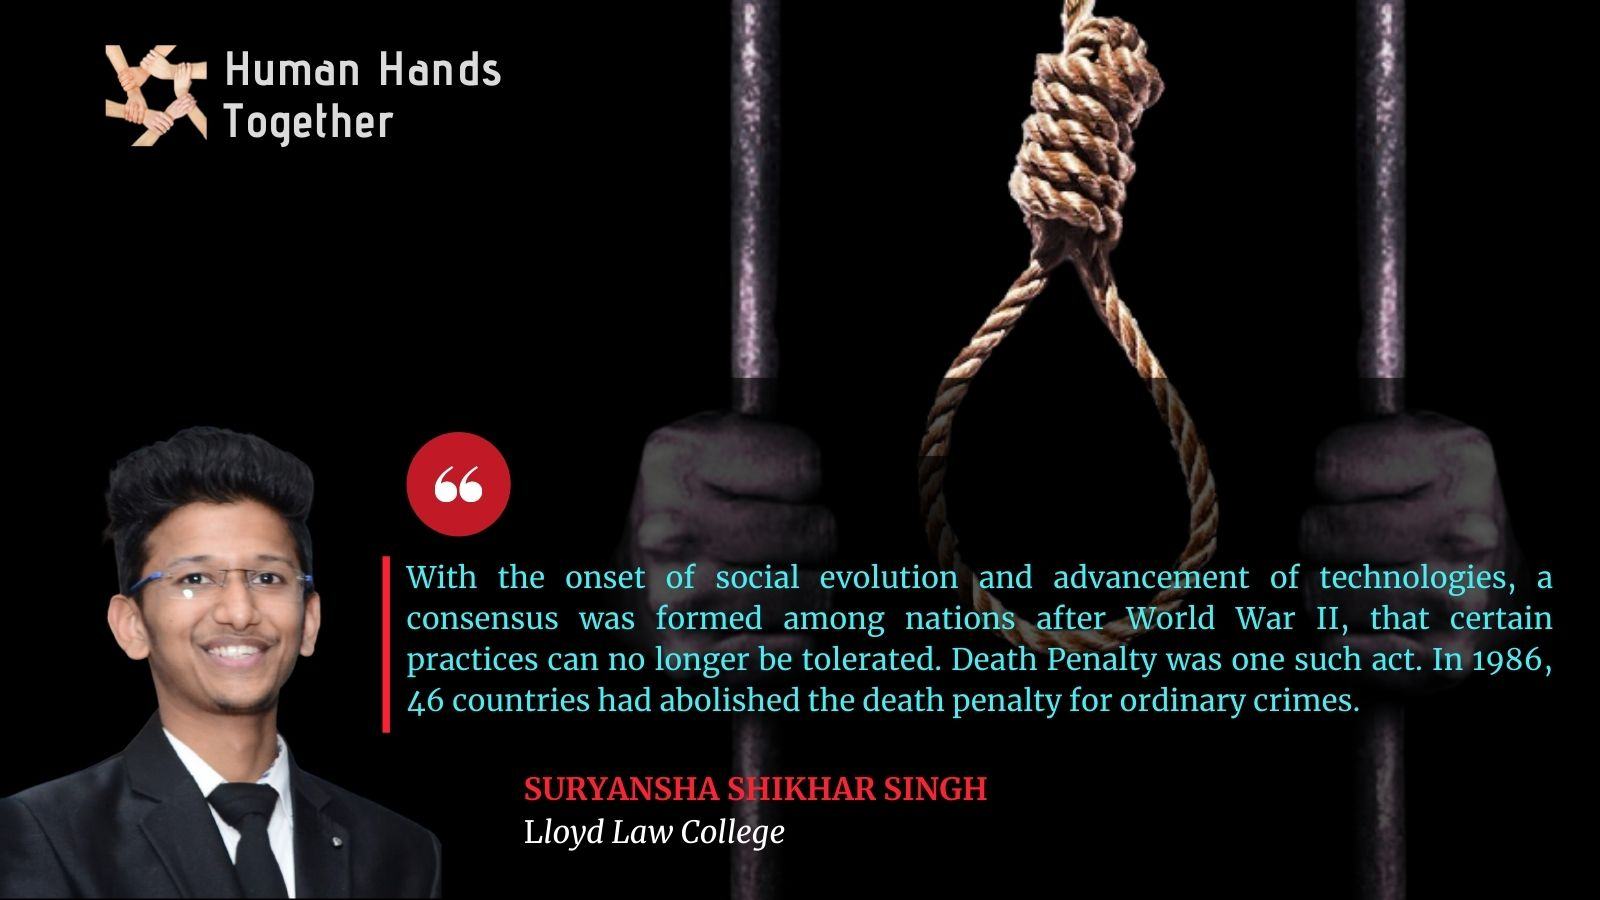 DEATH PENALTY AND HUMAN RIGHTS